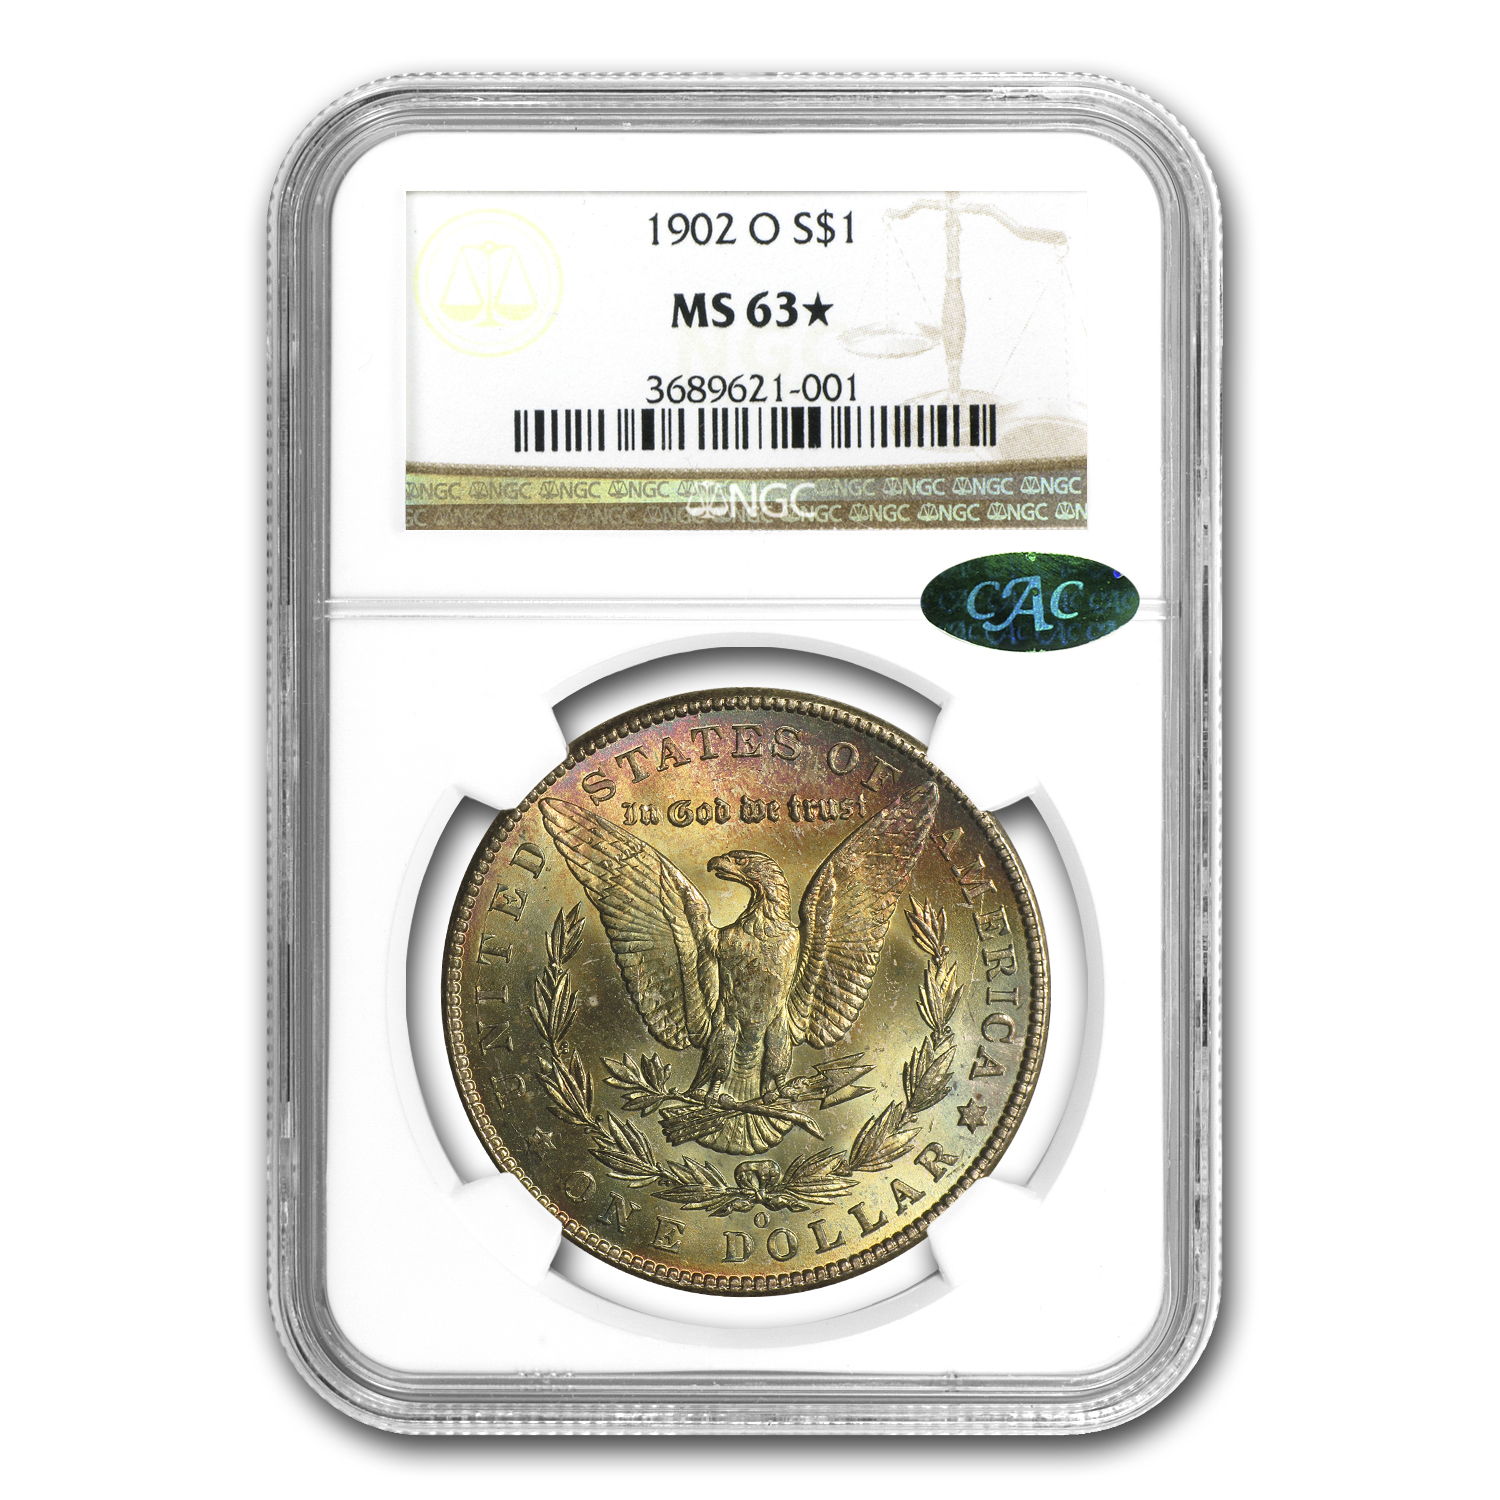 1902-O Morgan Dollar MS-63* Star NGC Pink and Yellow Reverse CAC